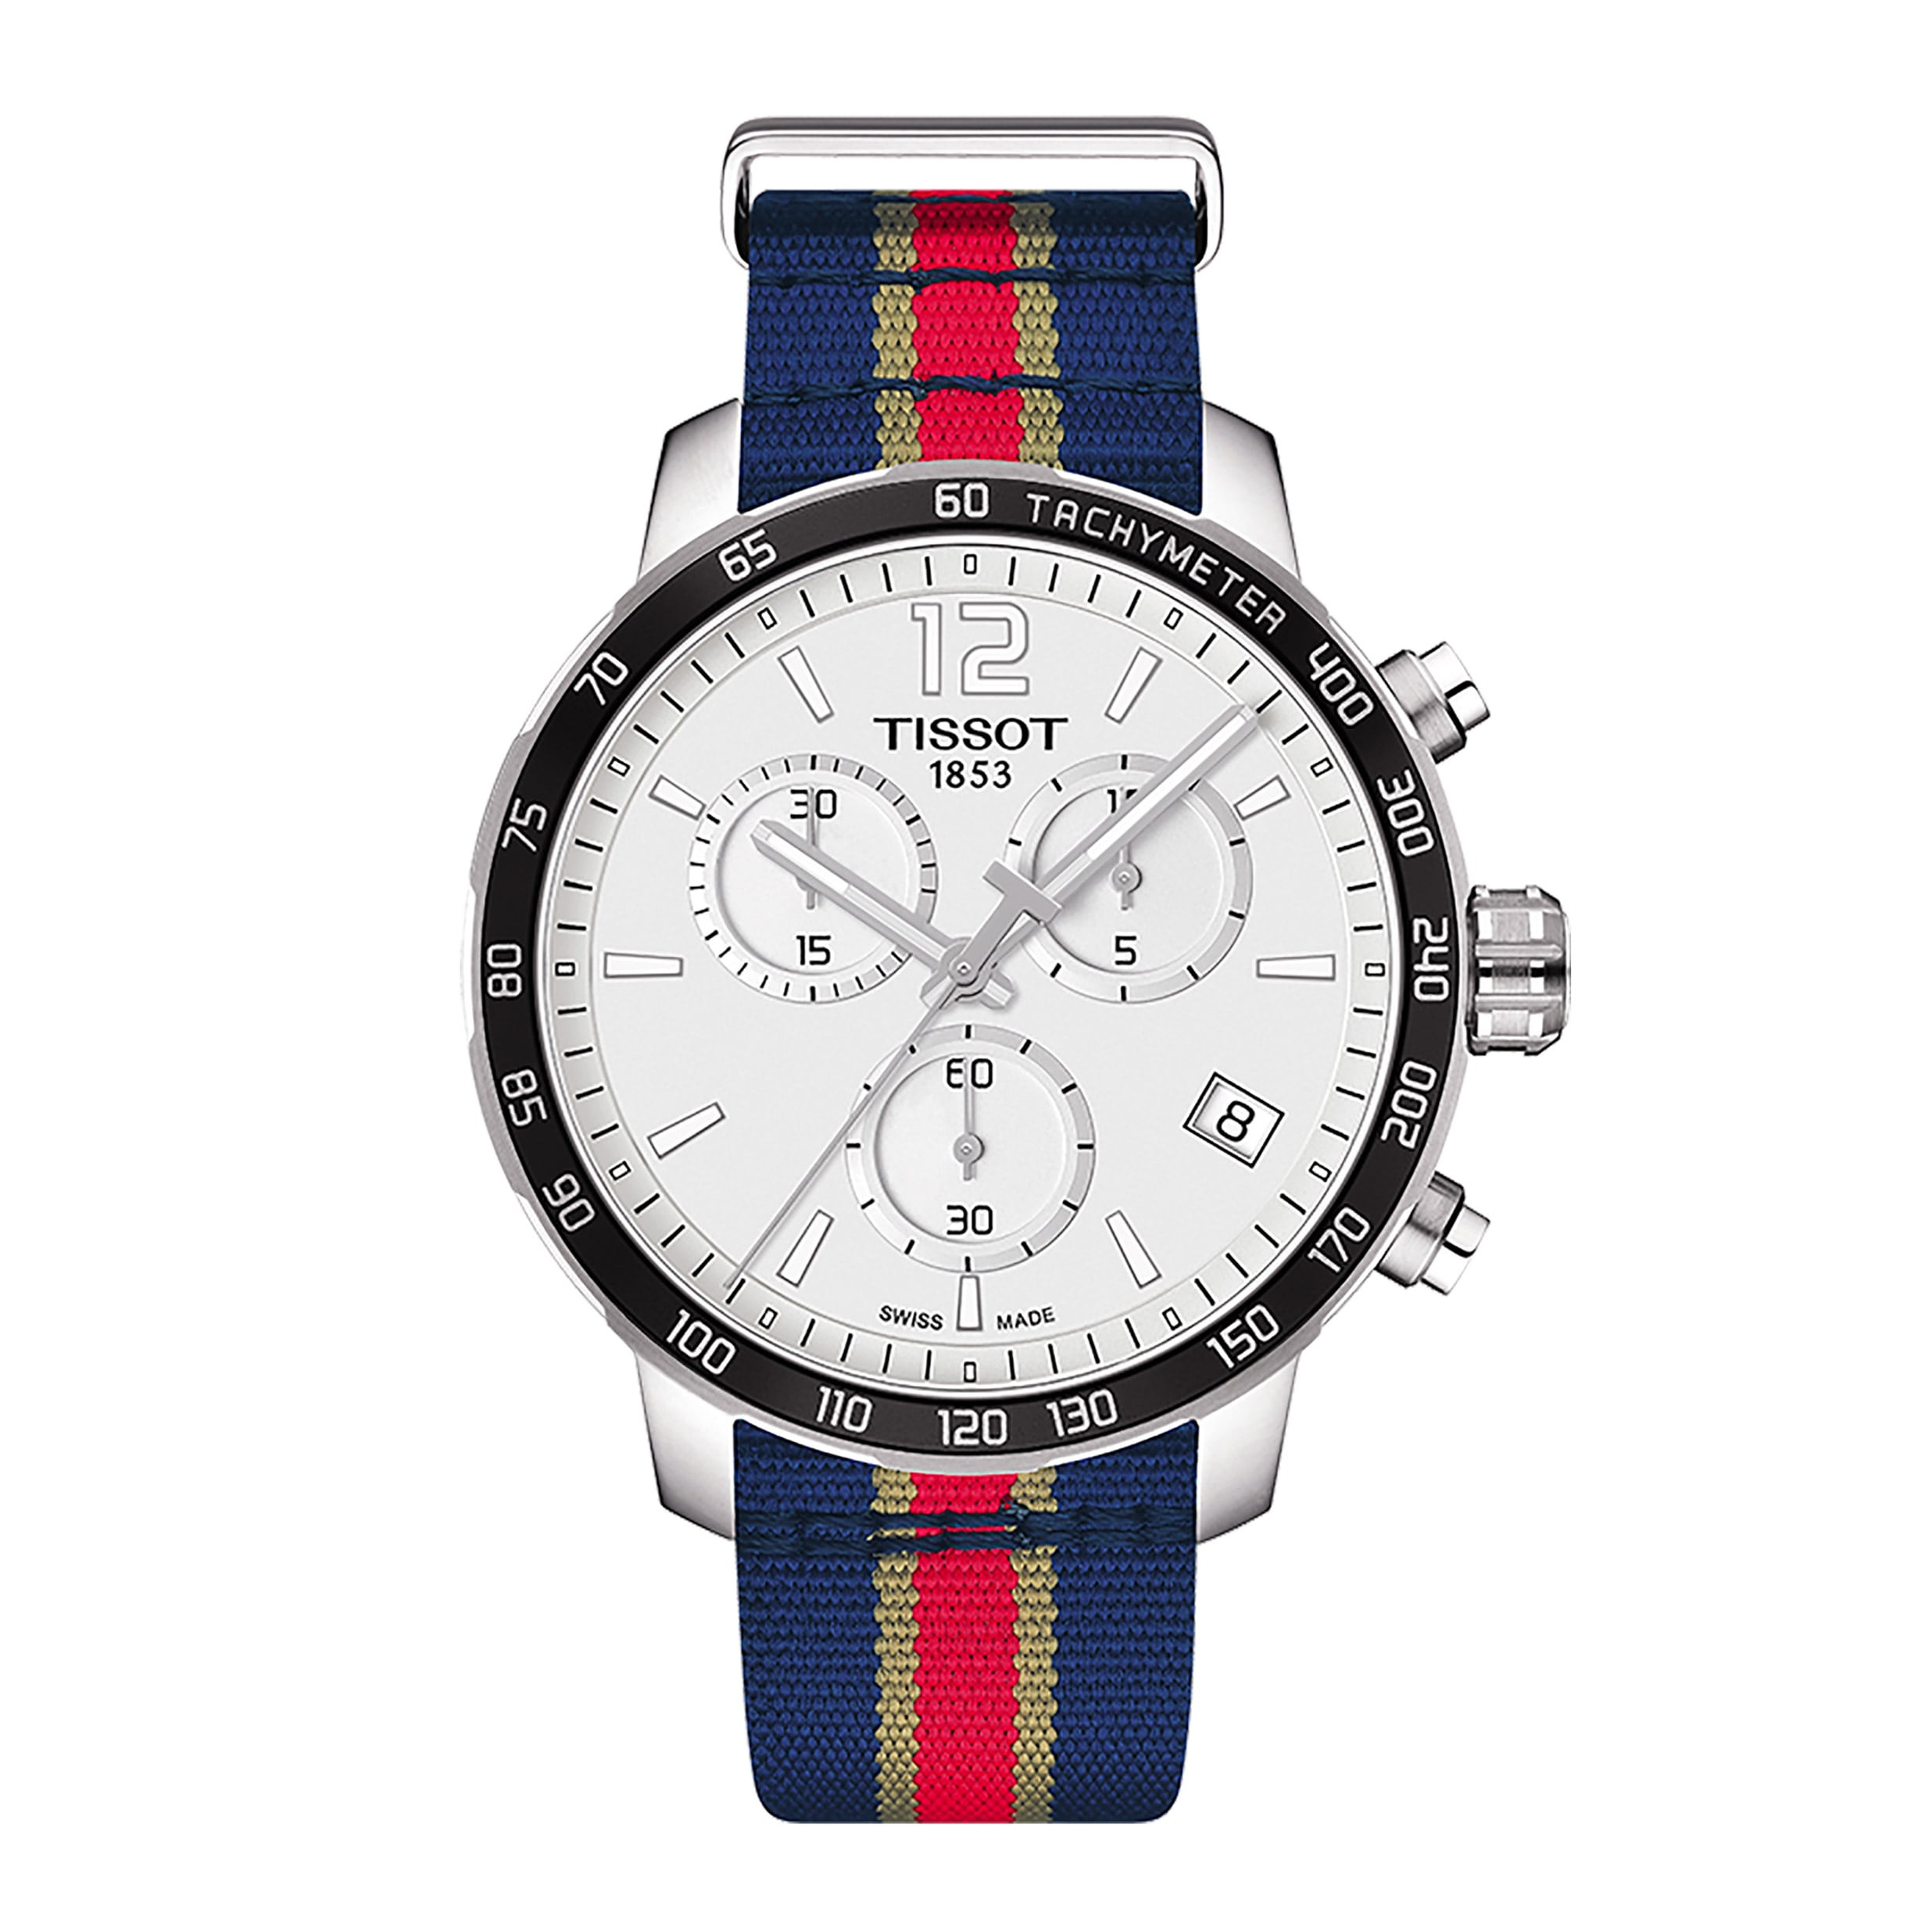 New Orleans Pelicans Tissot Quickster Special Edition Watch